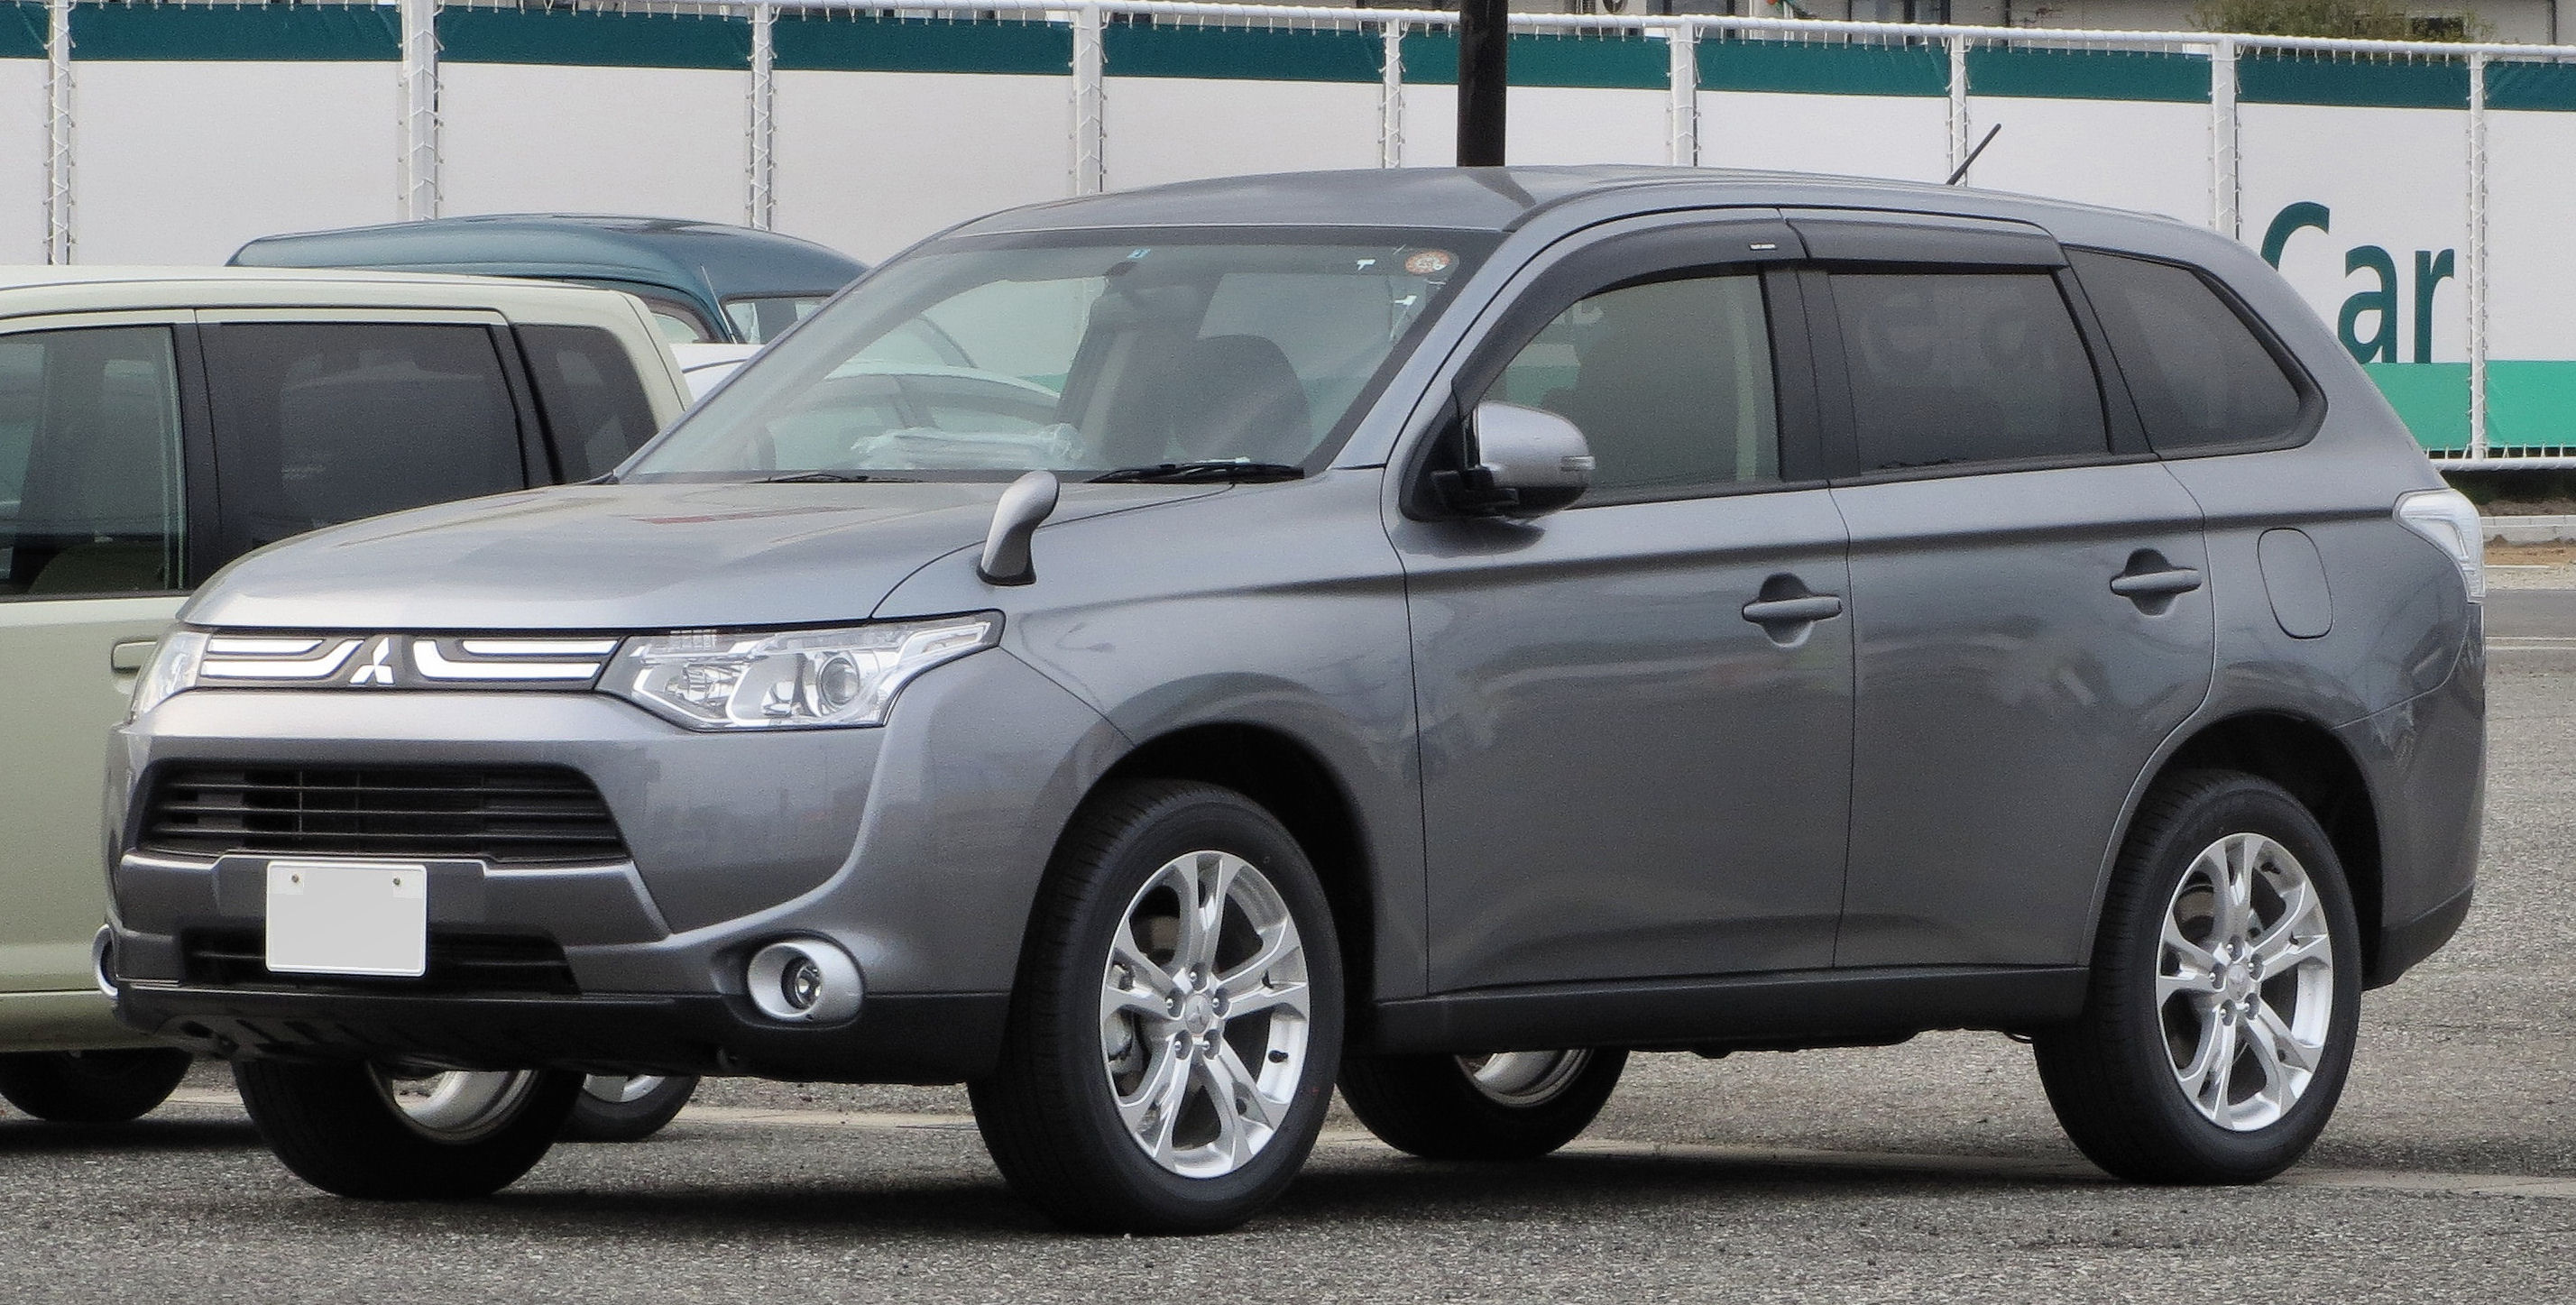 new car releases 2014 philippinesThe ugliest new and redesigned cars of 2014  PropertyCasualty360